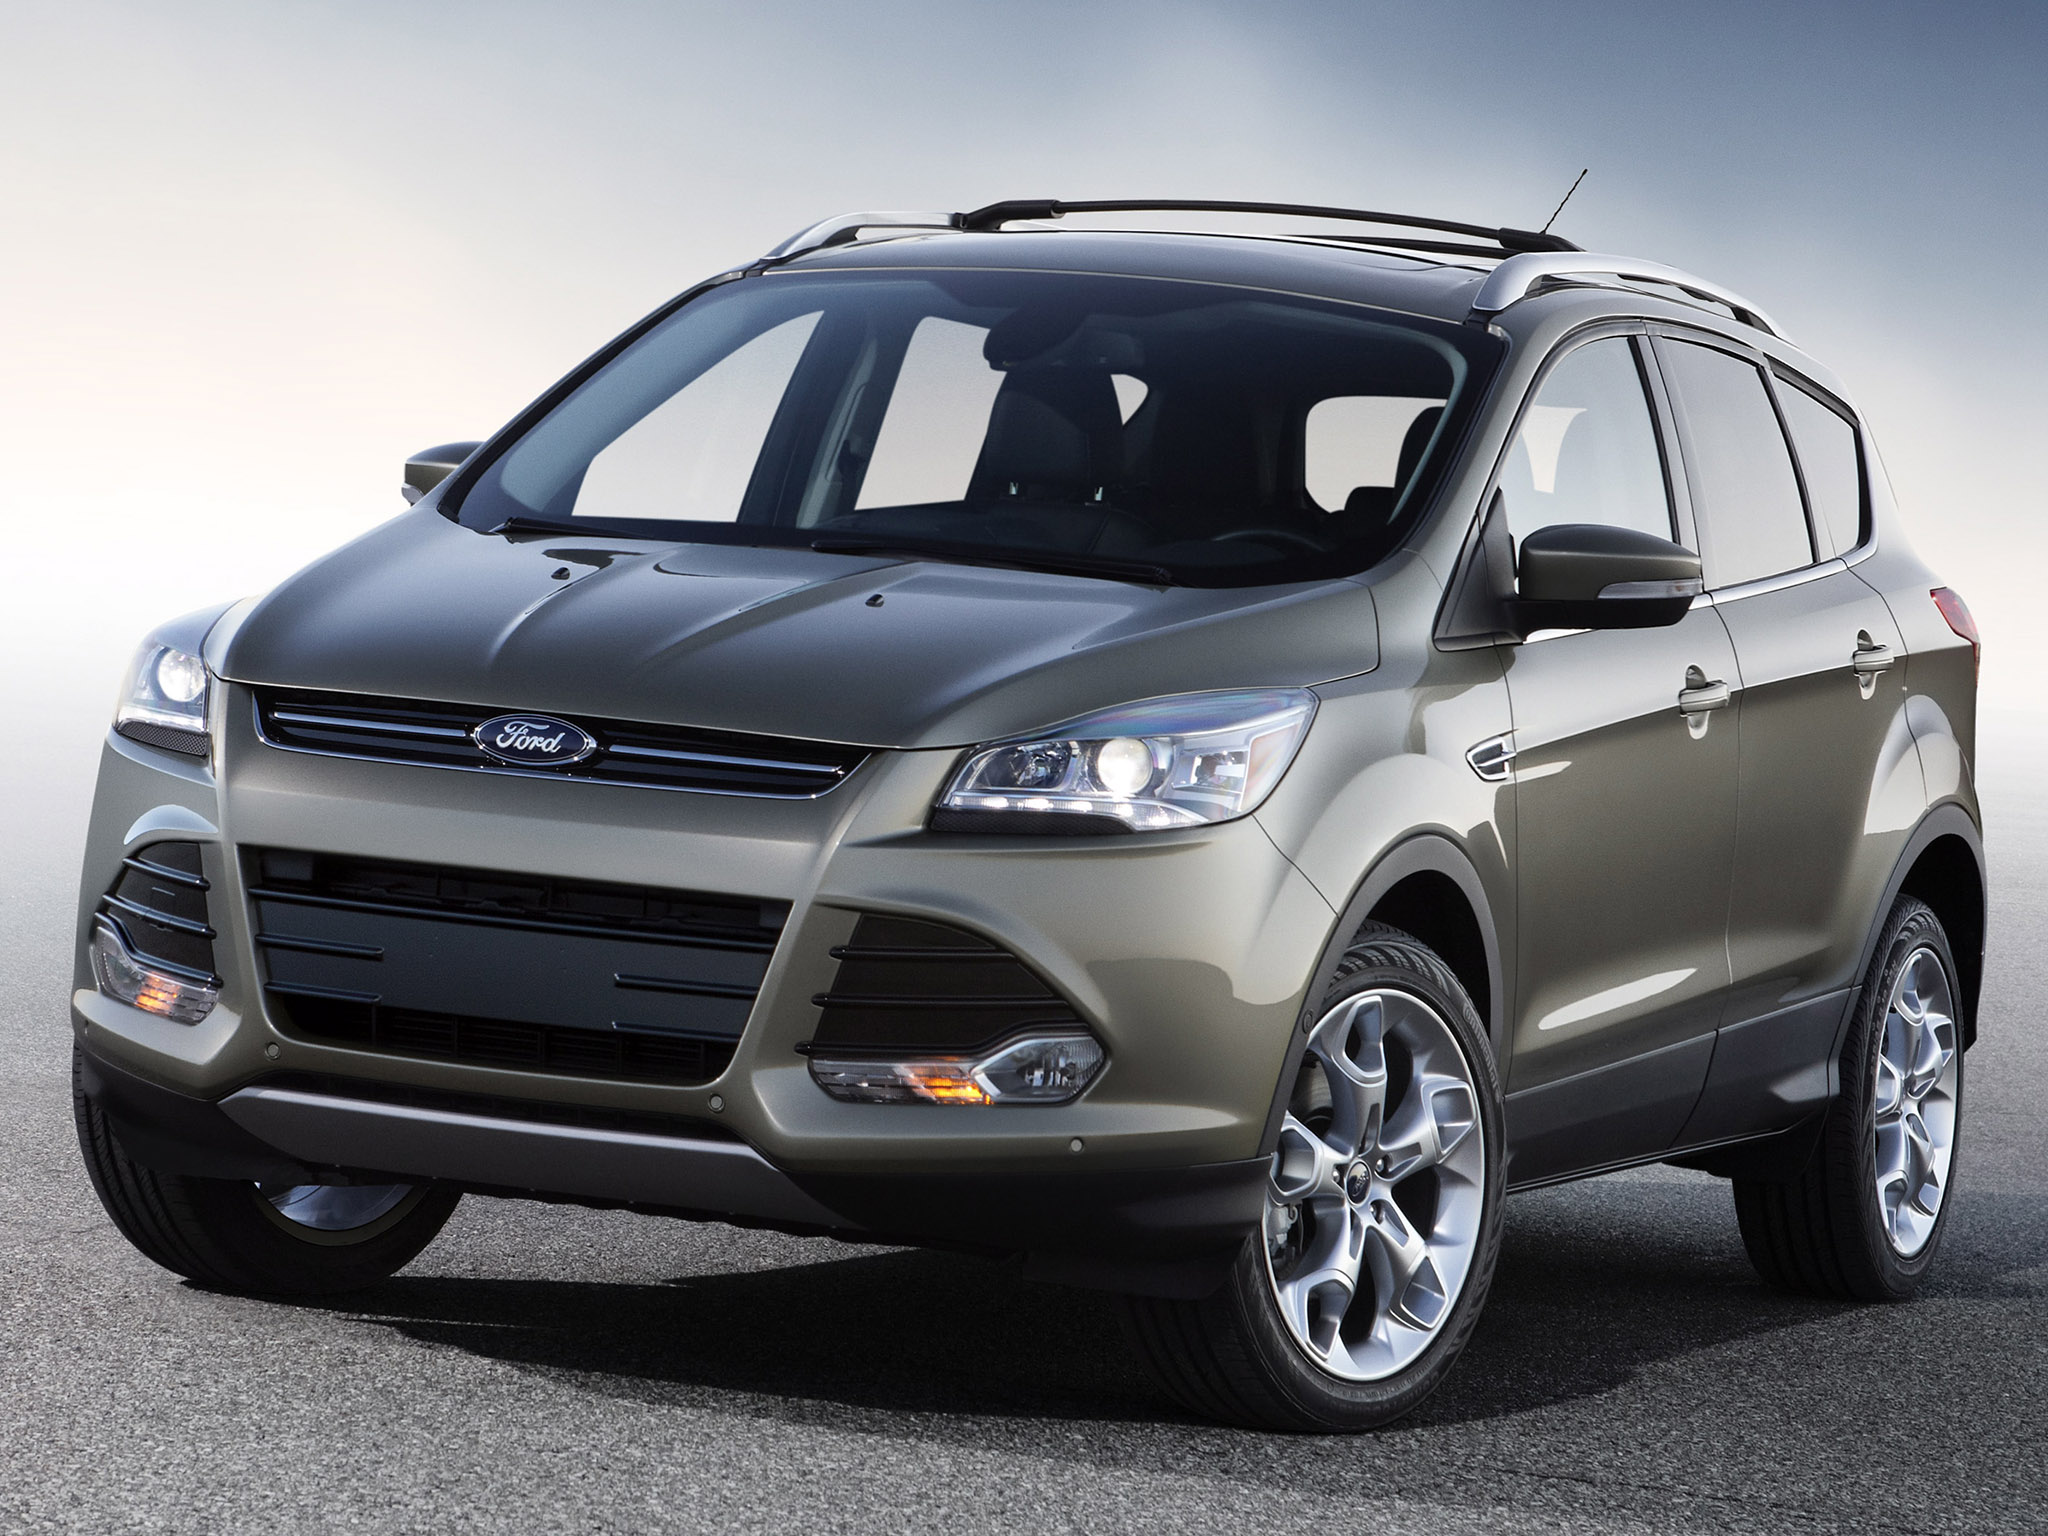 ford escape 2012 ford escape 2012 photo 24 car in pictures car photo gallery. Black Bedroom Furniture Sets. Home Design Ideas